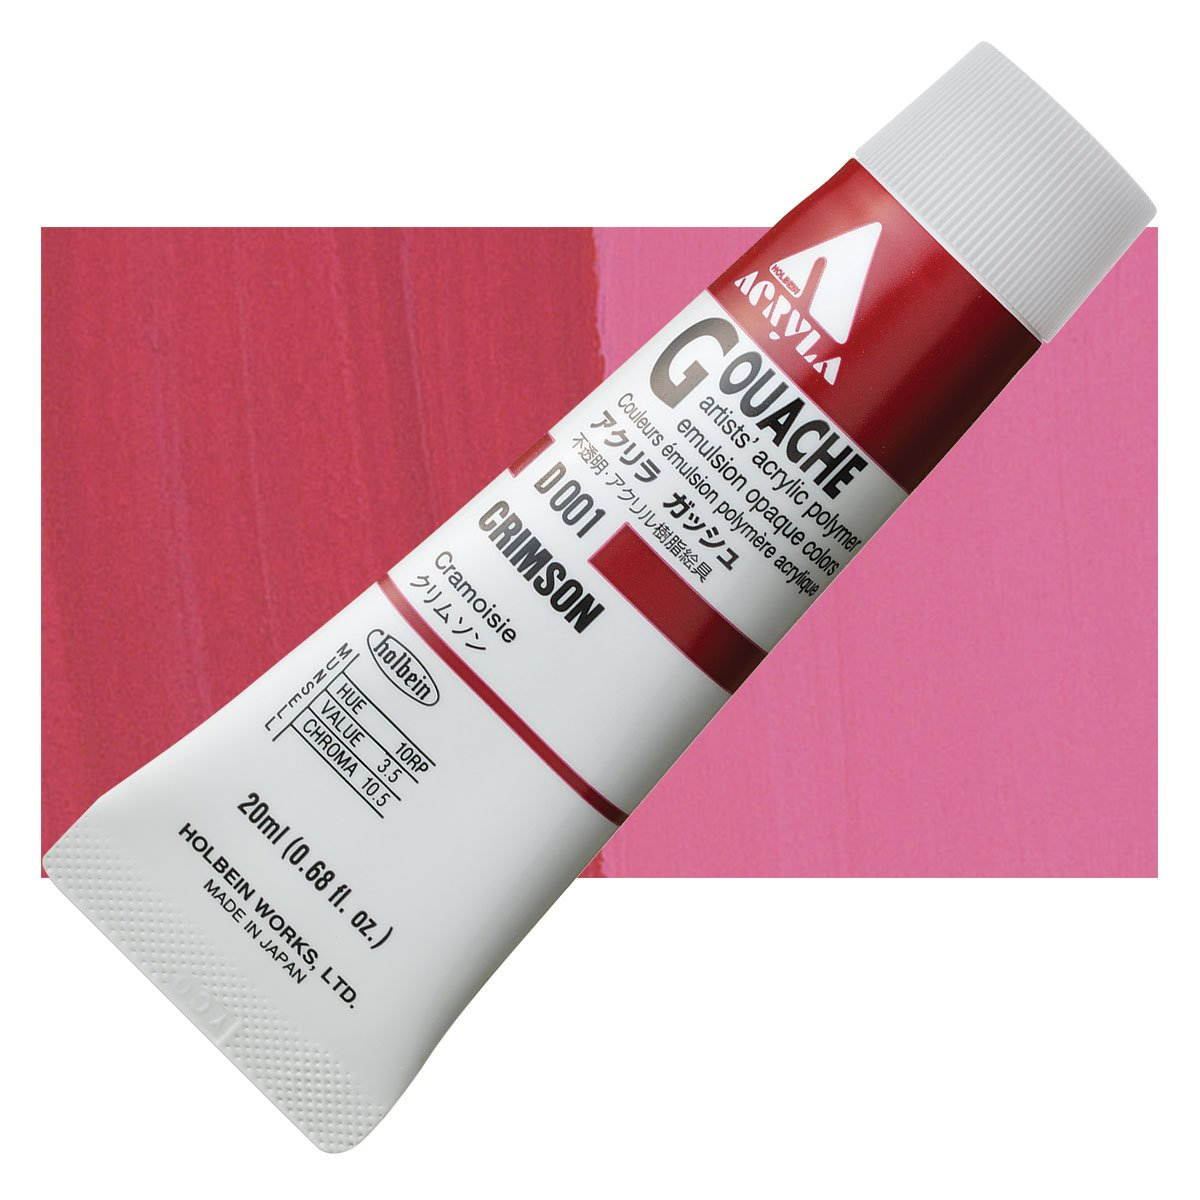 Holbein Acryla Gouache 20ml Tubes - Crimson (Primary Red) by Holbein - K. A. Artist Shop